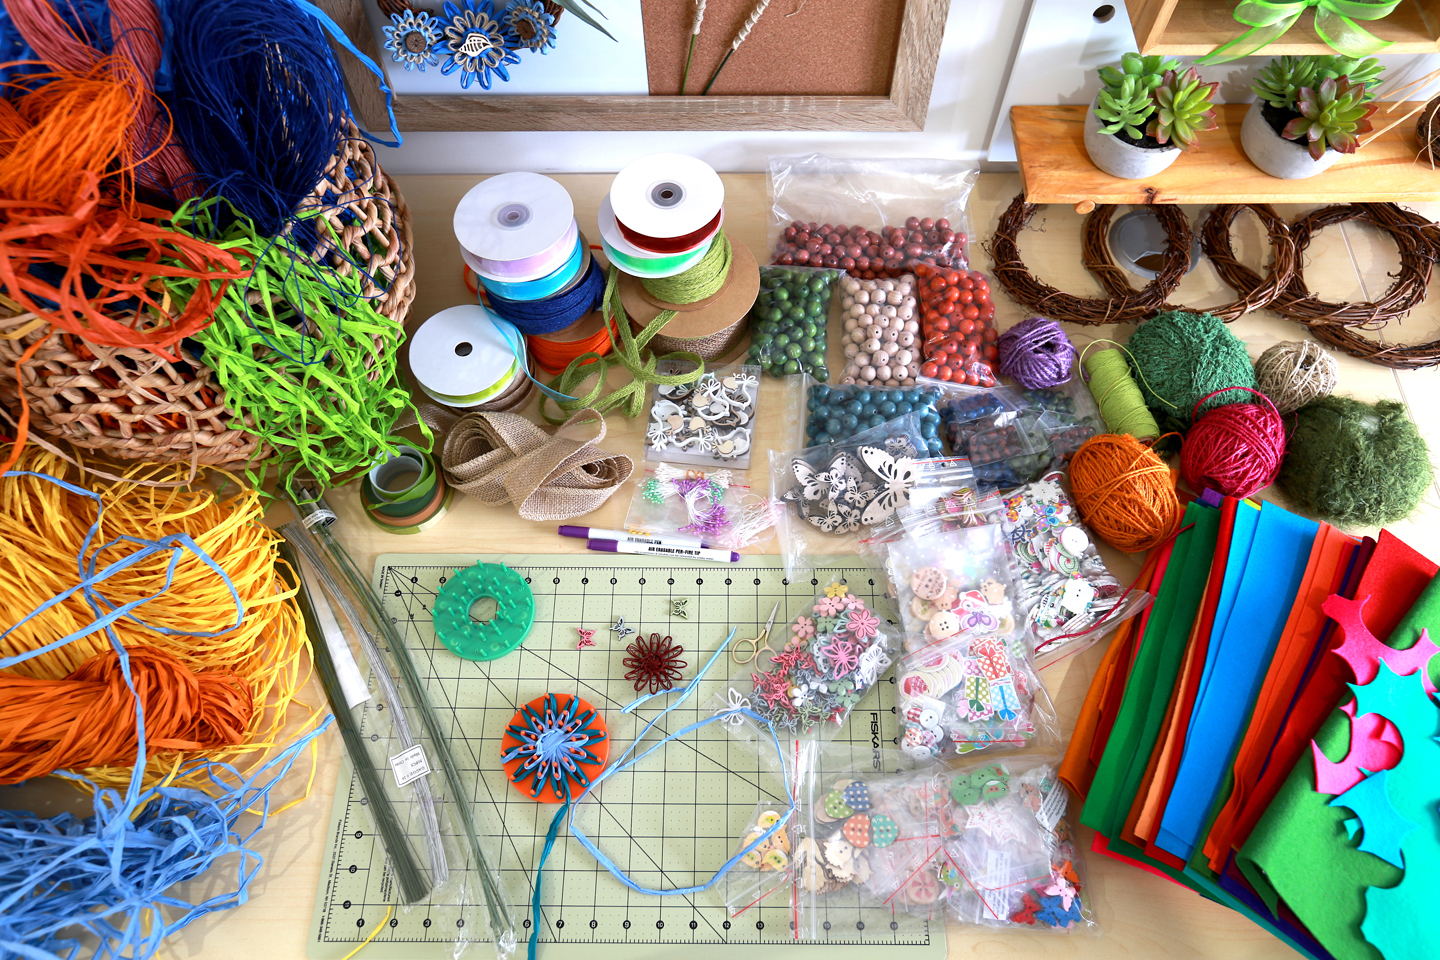 Some of Marketa's making materials; colourful fibres, ribbons, buttons, felts, beads, twine, wire, embelishments and tiny round looms